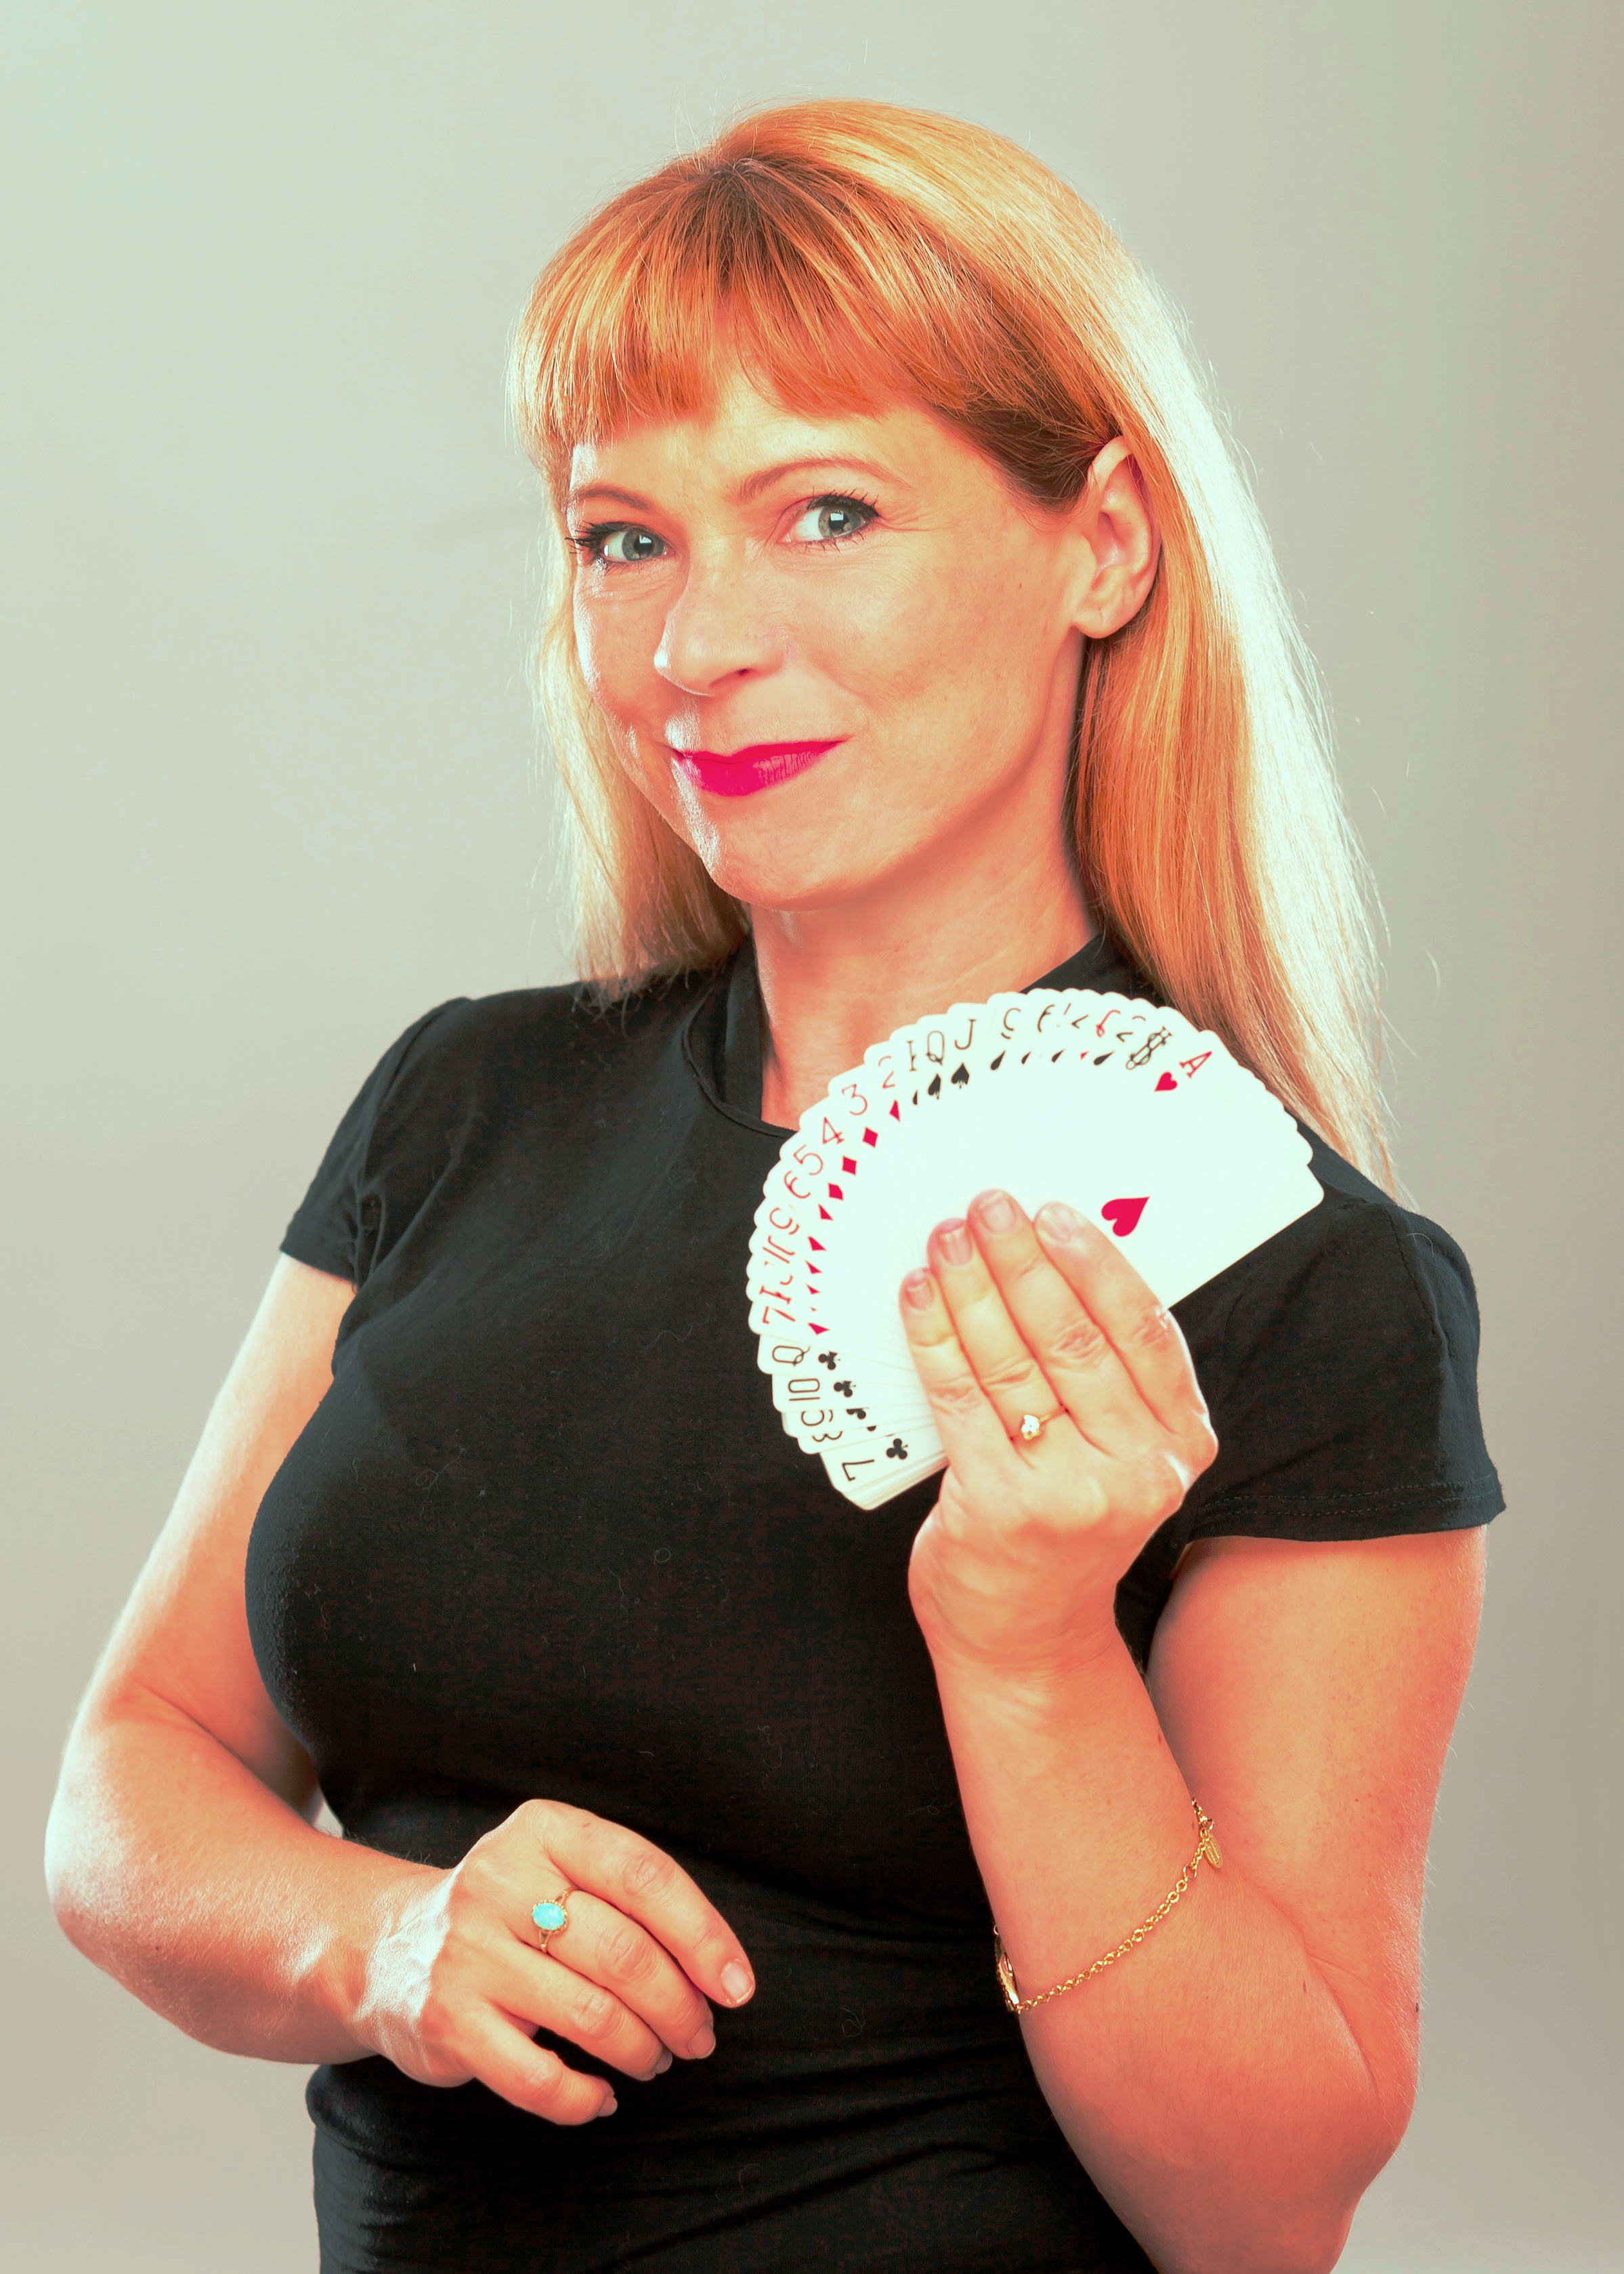 Careena Fenton No. 1 UK's female magician from West Midlands